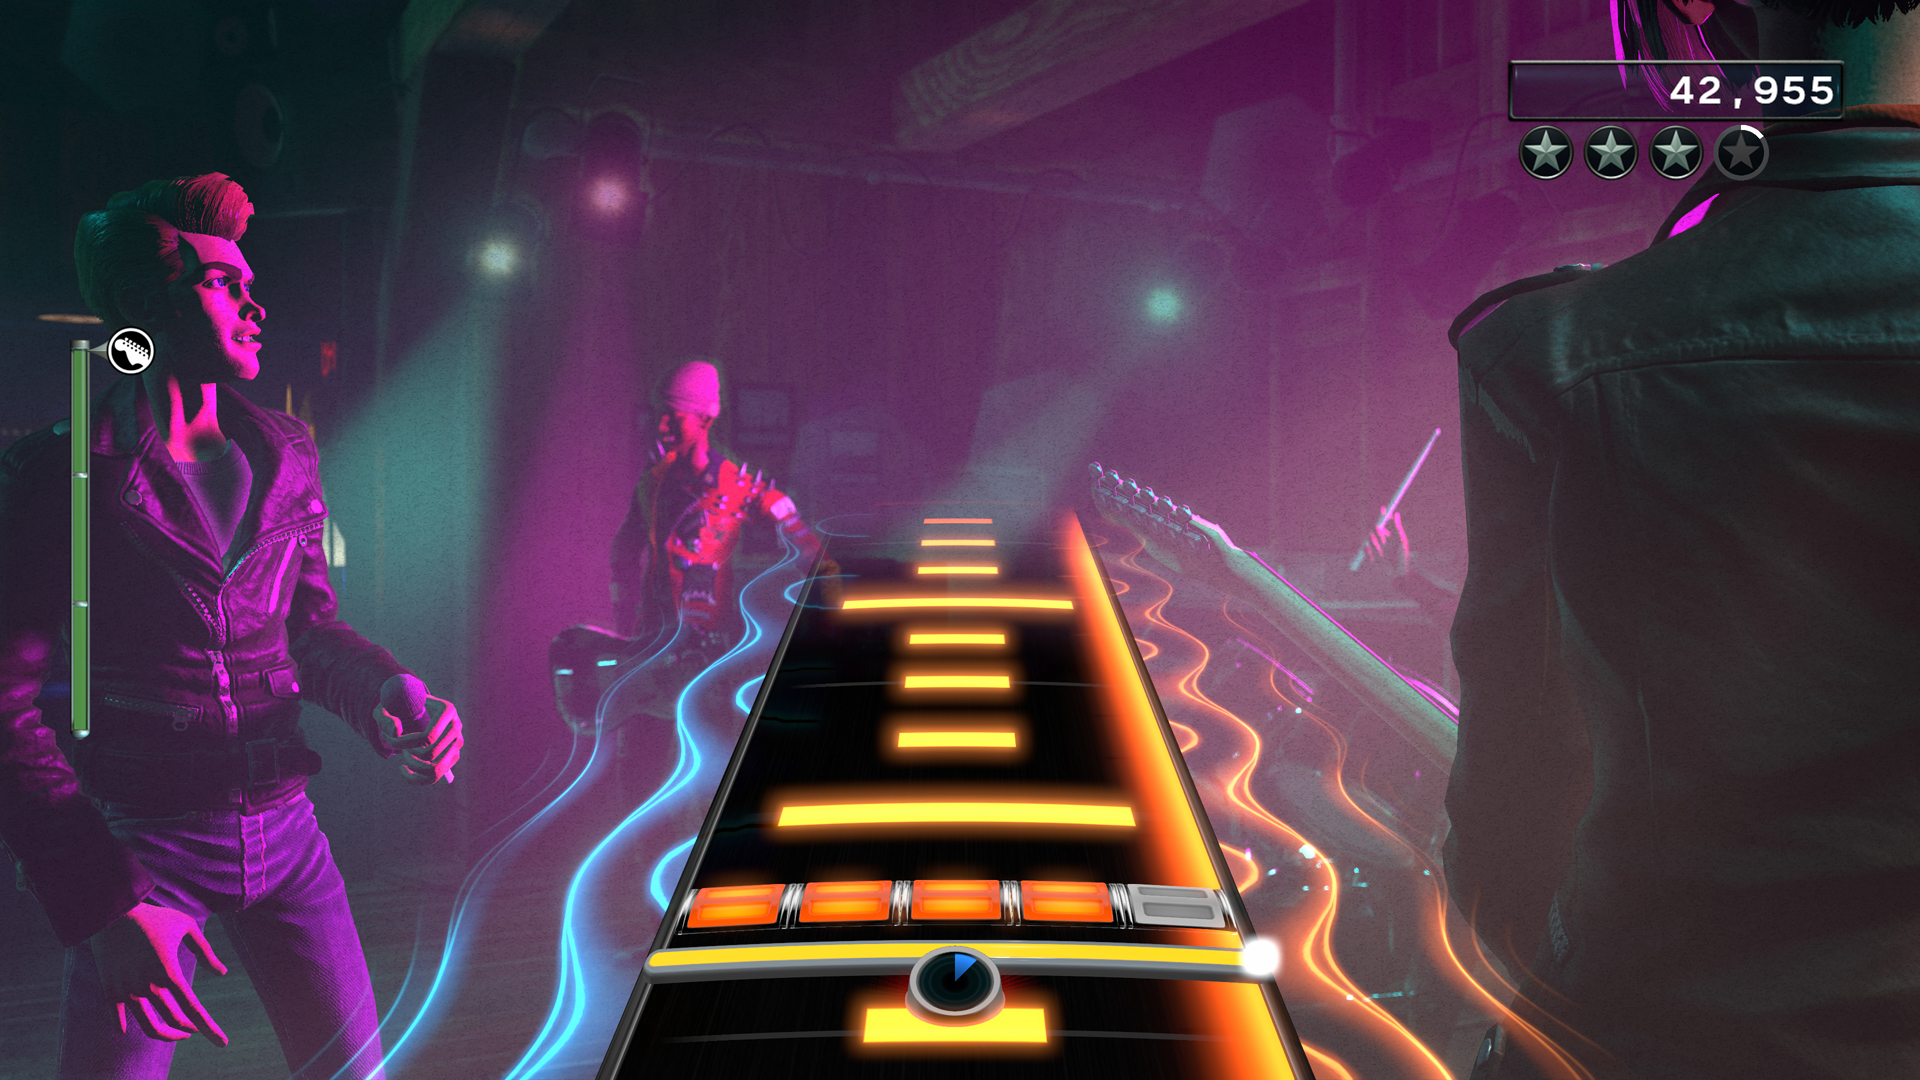 The bars on the track are suggestions for strumming during solos in Rock Band 4.